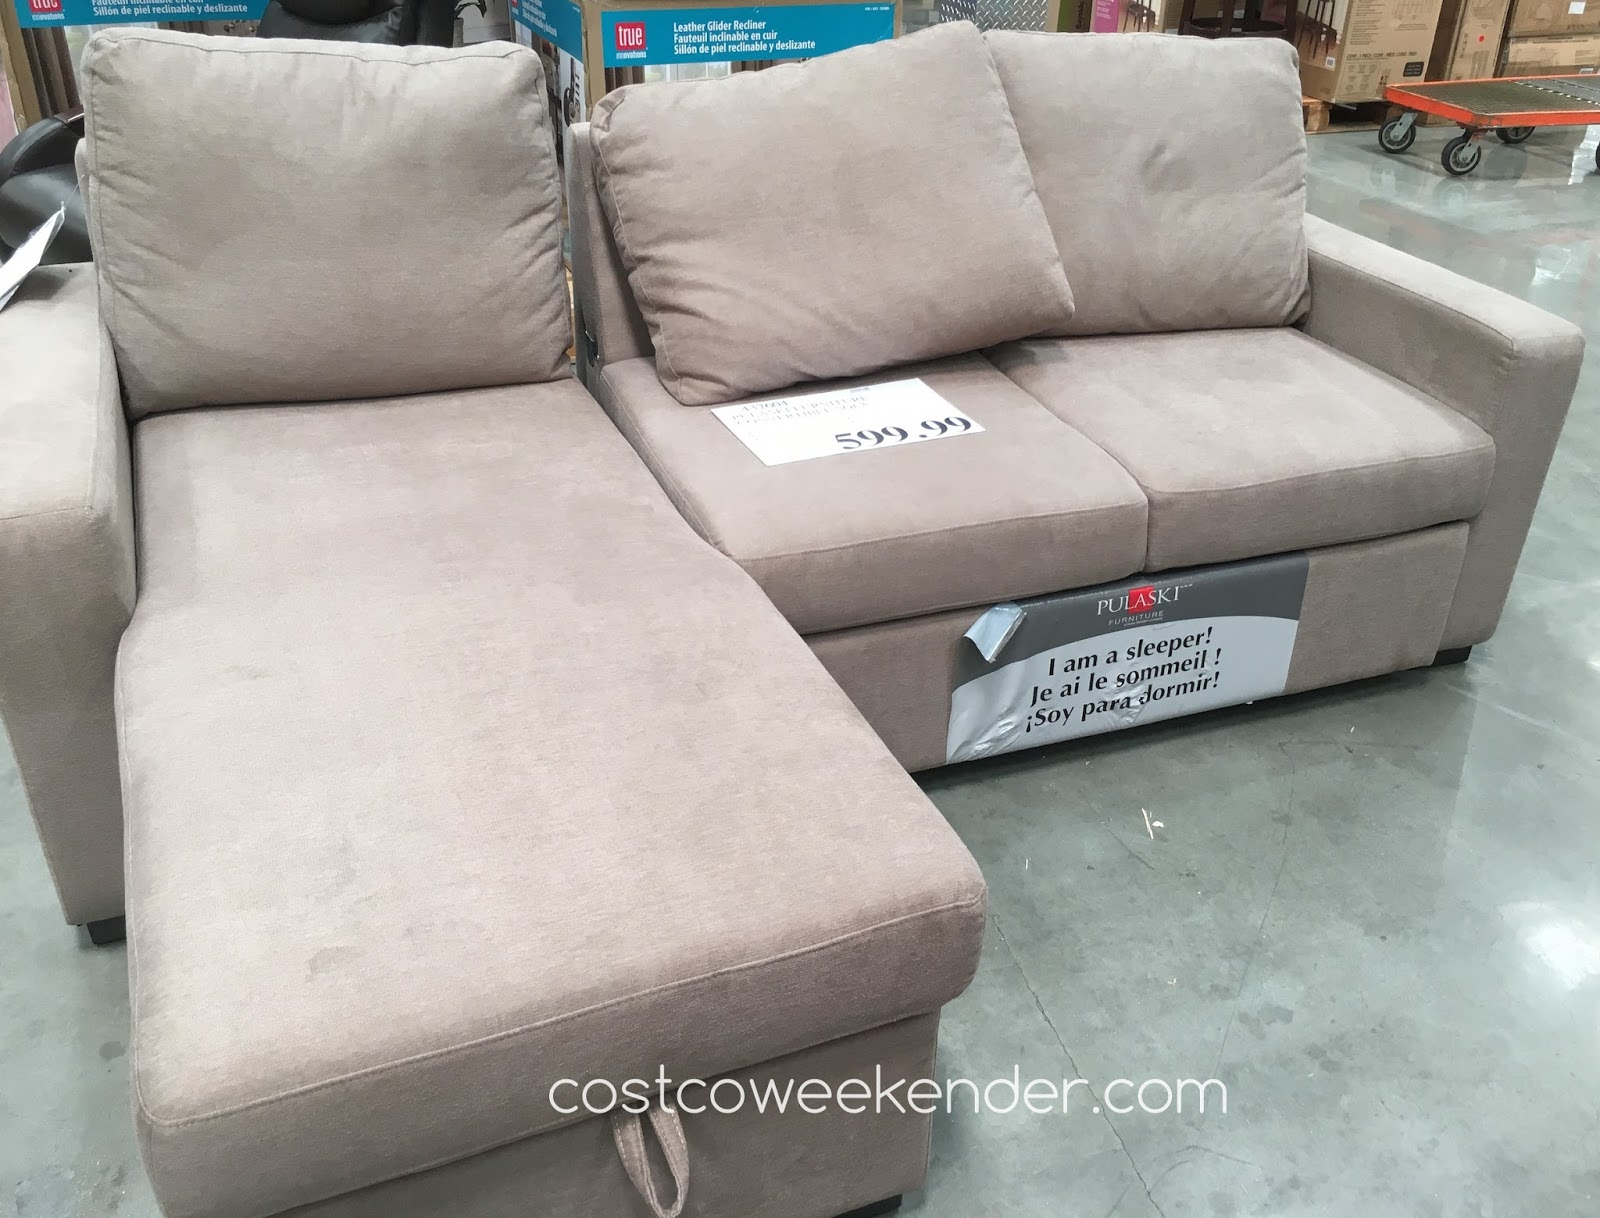 Pulaski Furniture Convertible Sofa Costco Weekender